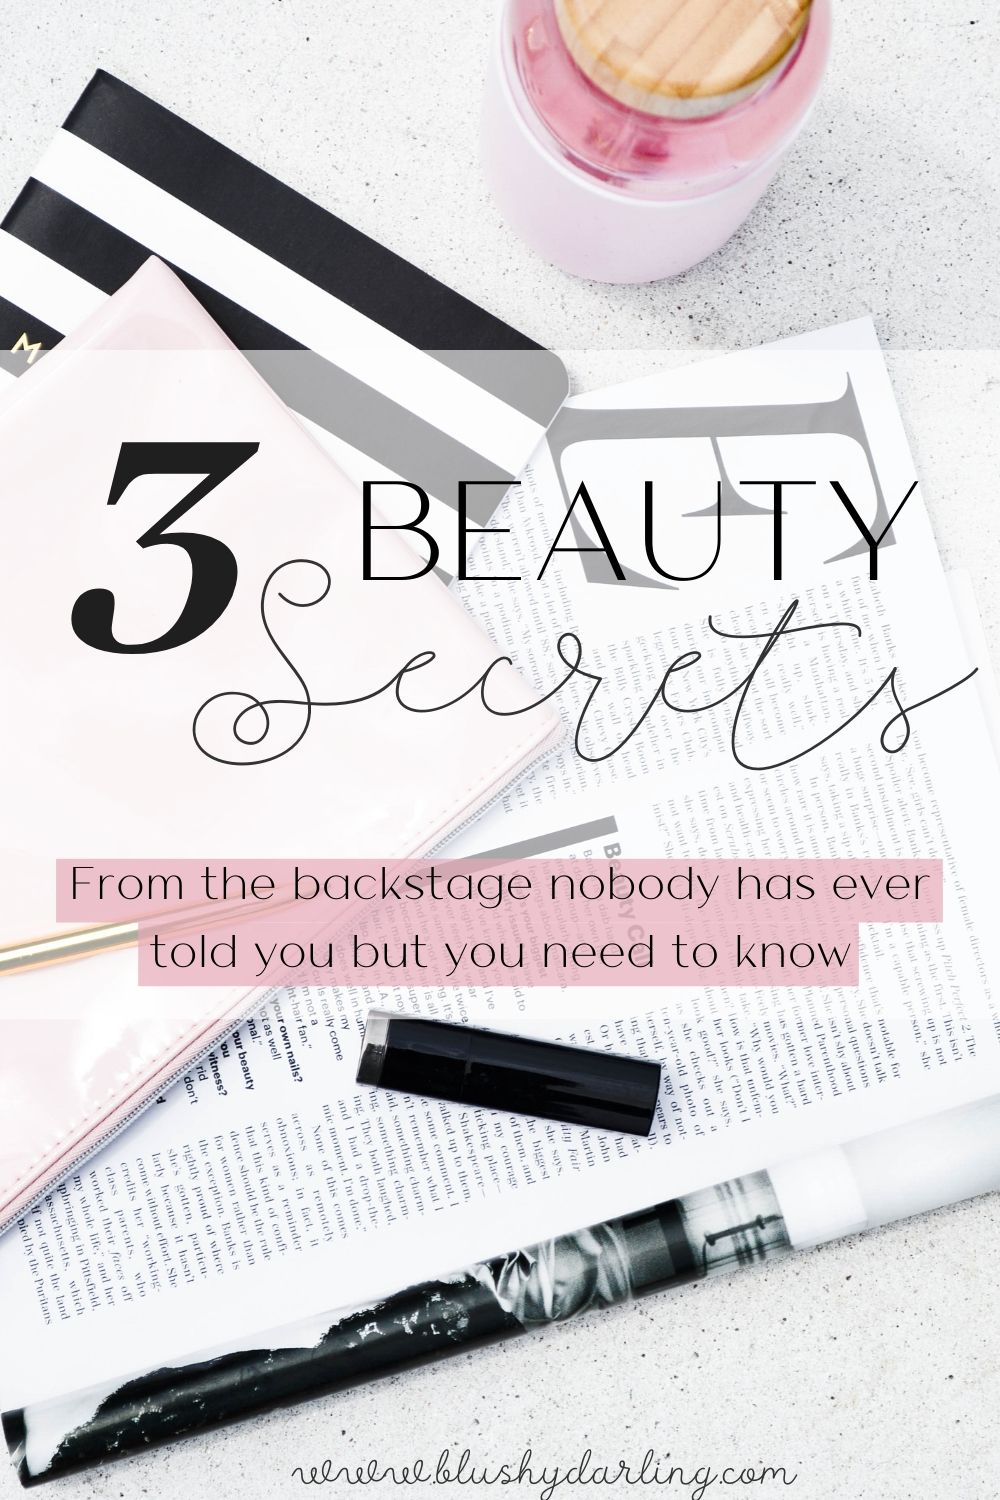 These are my 3 Beauty Secrets from the Backstage that no one has ever told you. How to get rid of blemishes, how to put lipstick on and get rid of dry nose #makeup #beauty #blogger